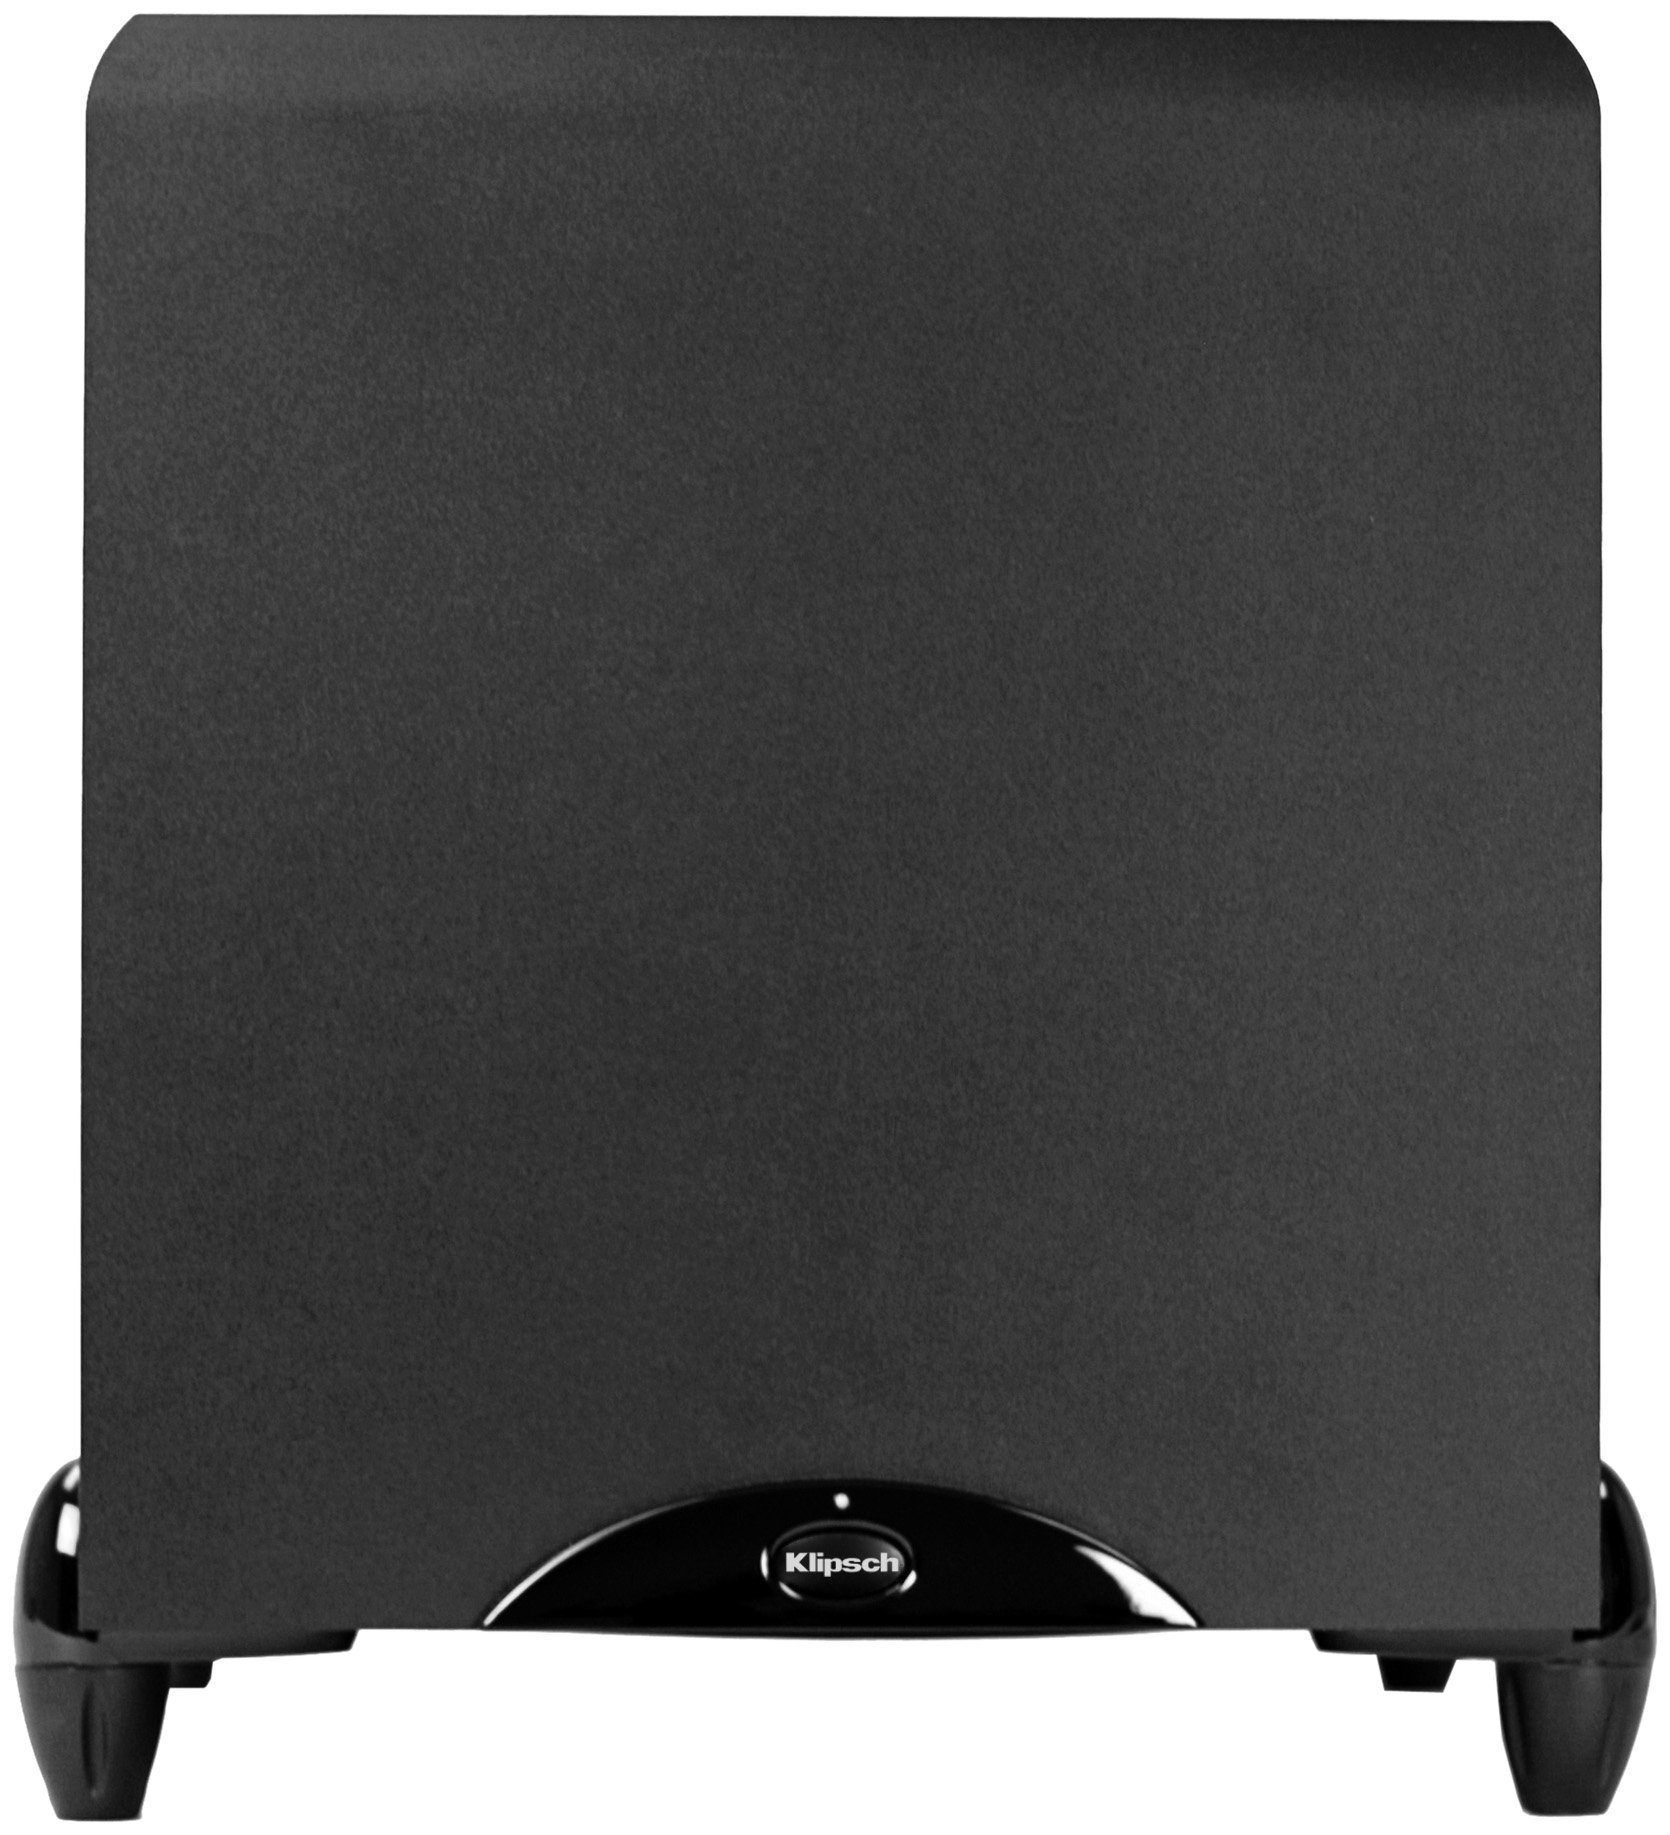 Klipsch Sub-12HG Synergy Series 12-Inch 300-Watt Subwoofer with High Gloss Trim (Black) (Discontinued by Manufacturer)